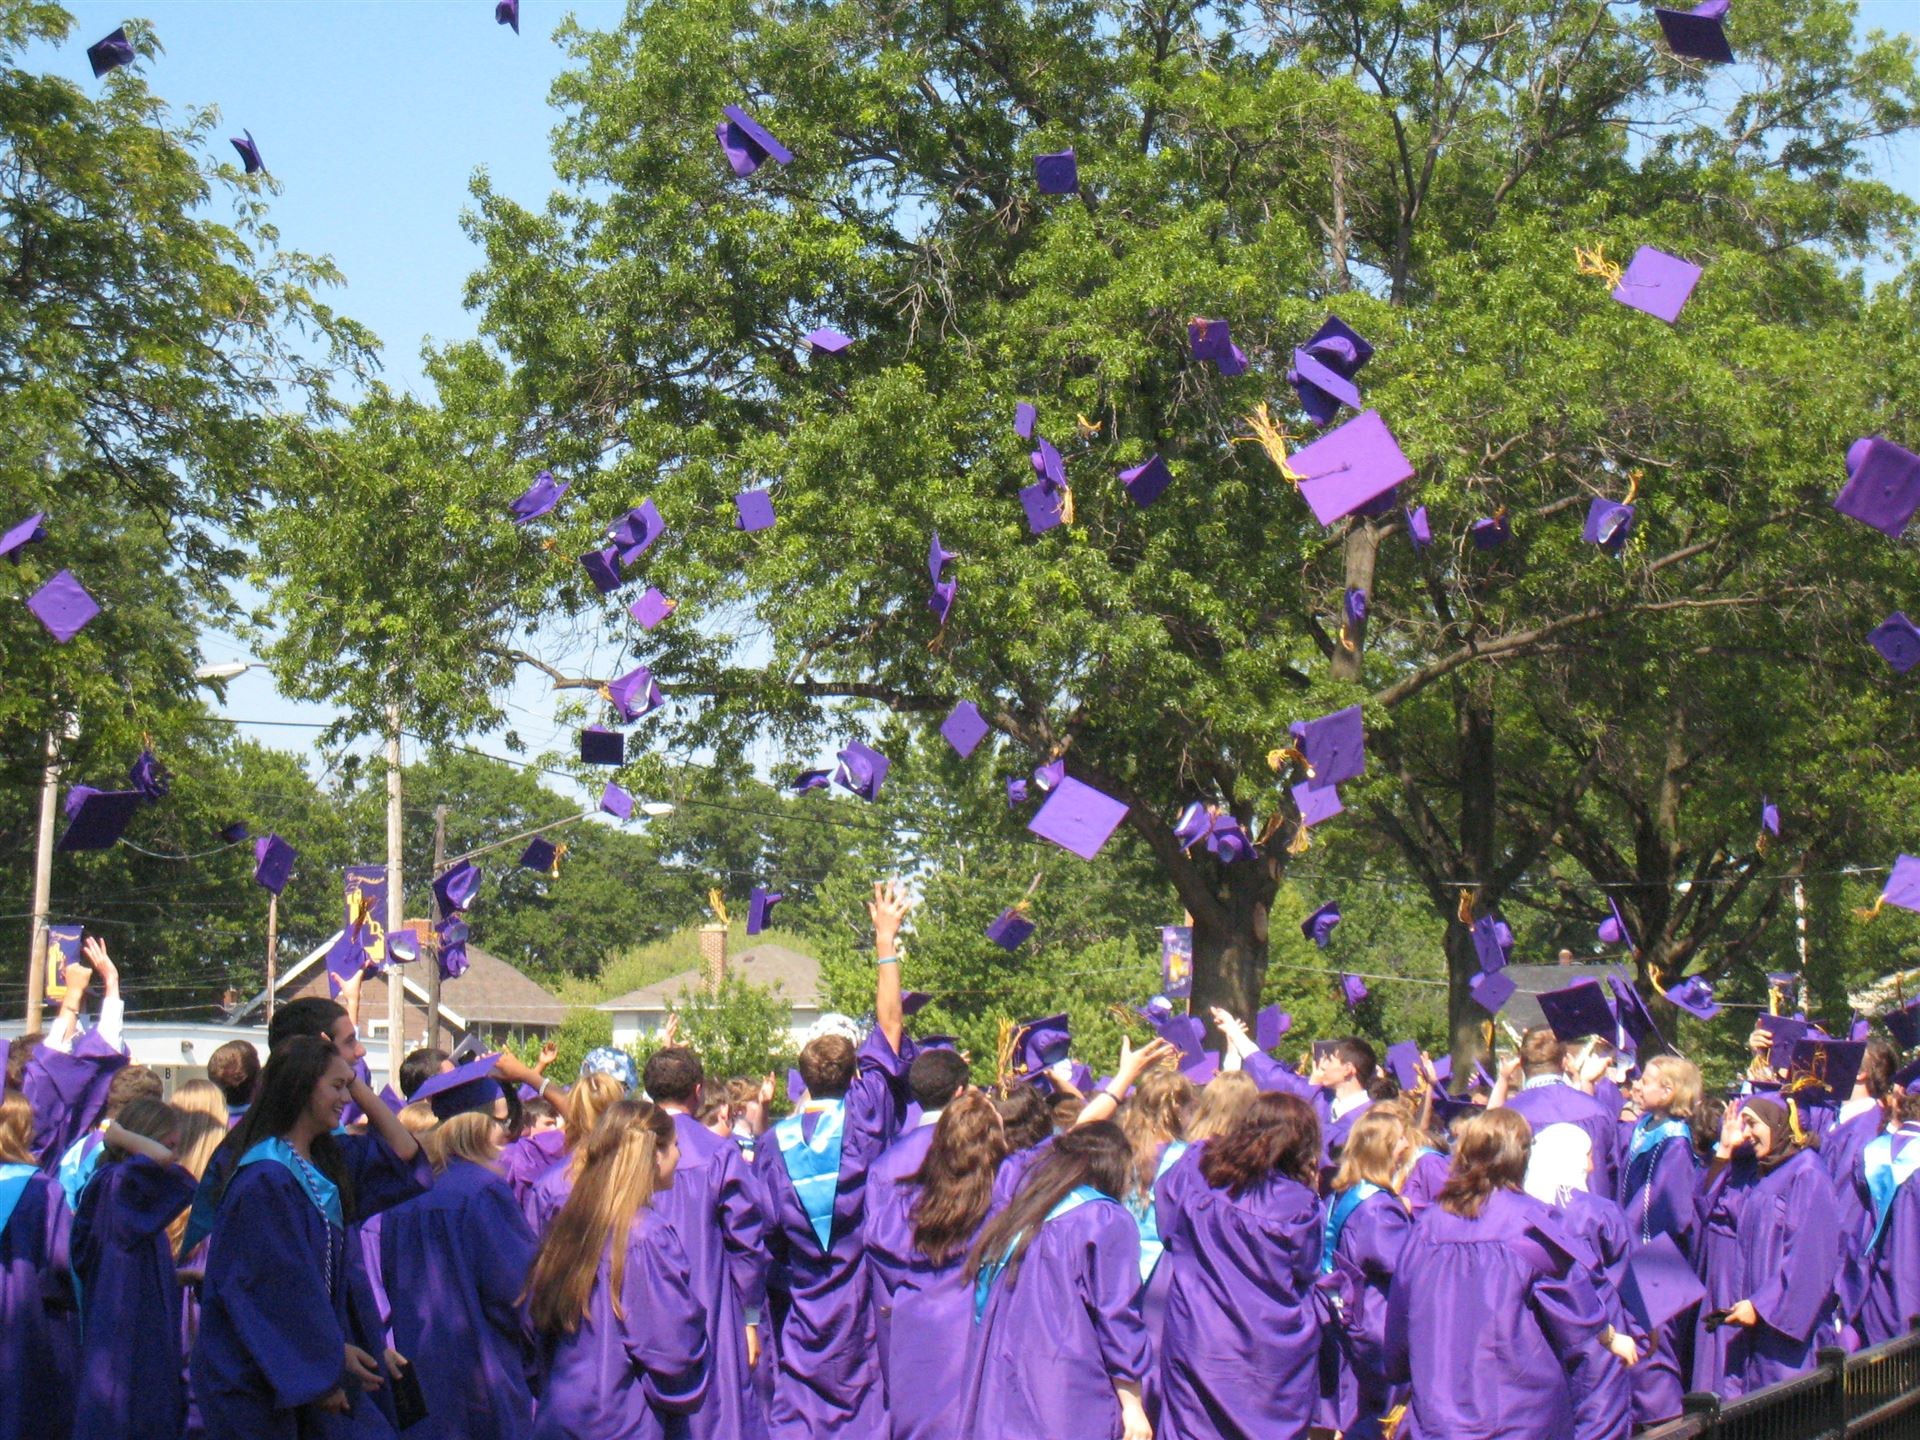 LHS 2020 graduates will be unable to toss their caps together as commencement will be online.